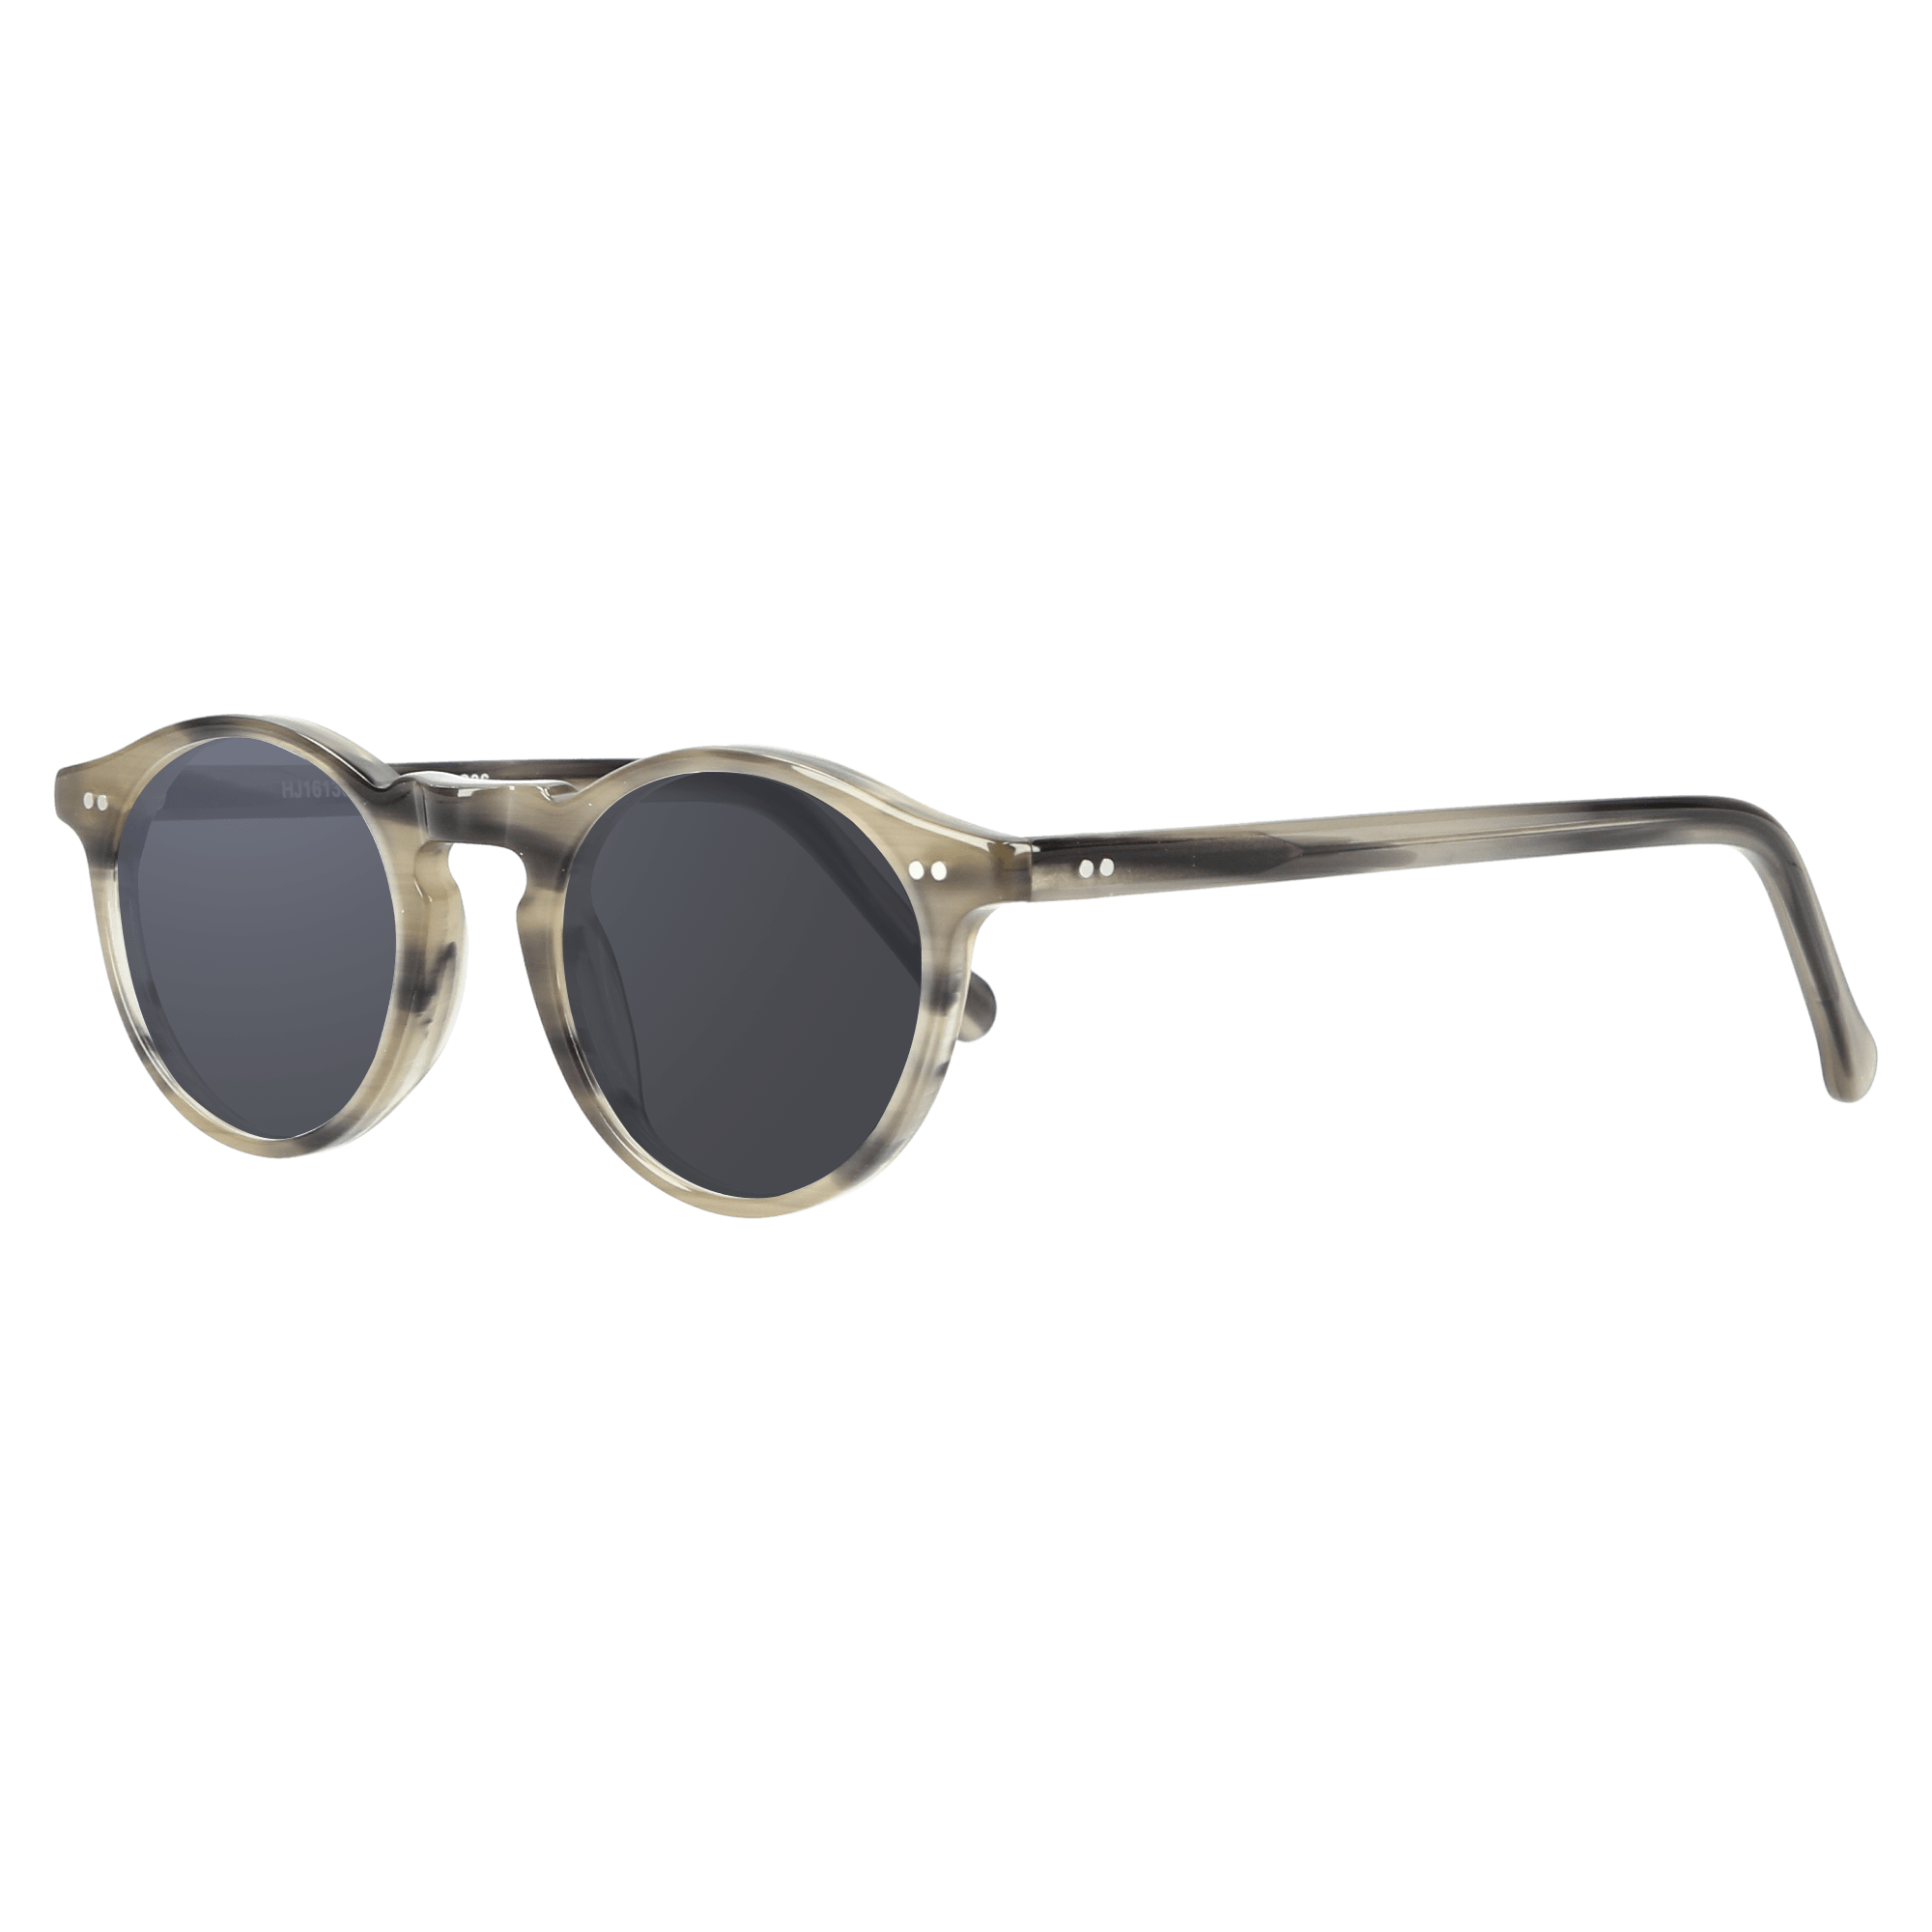 PARAN- STRIPE GREY WOLF SUNGLASSES SAINT REETS